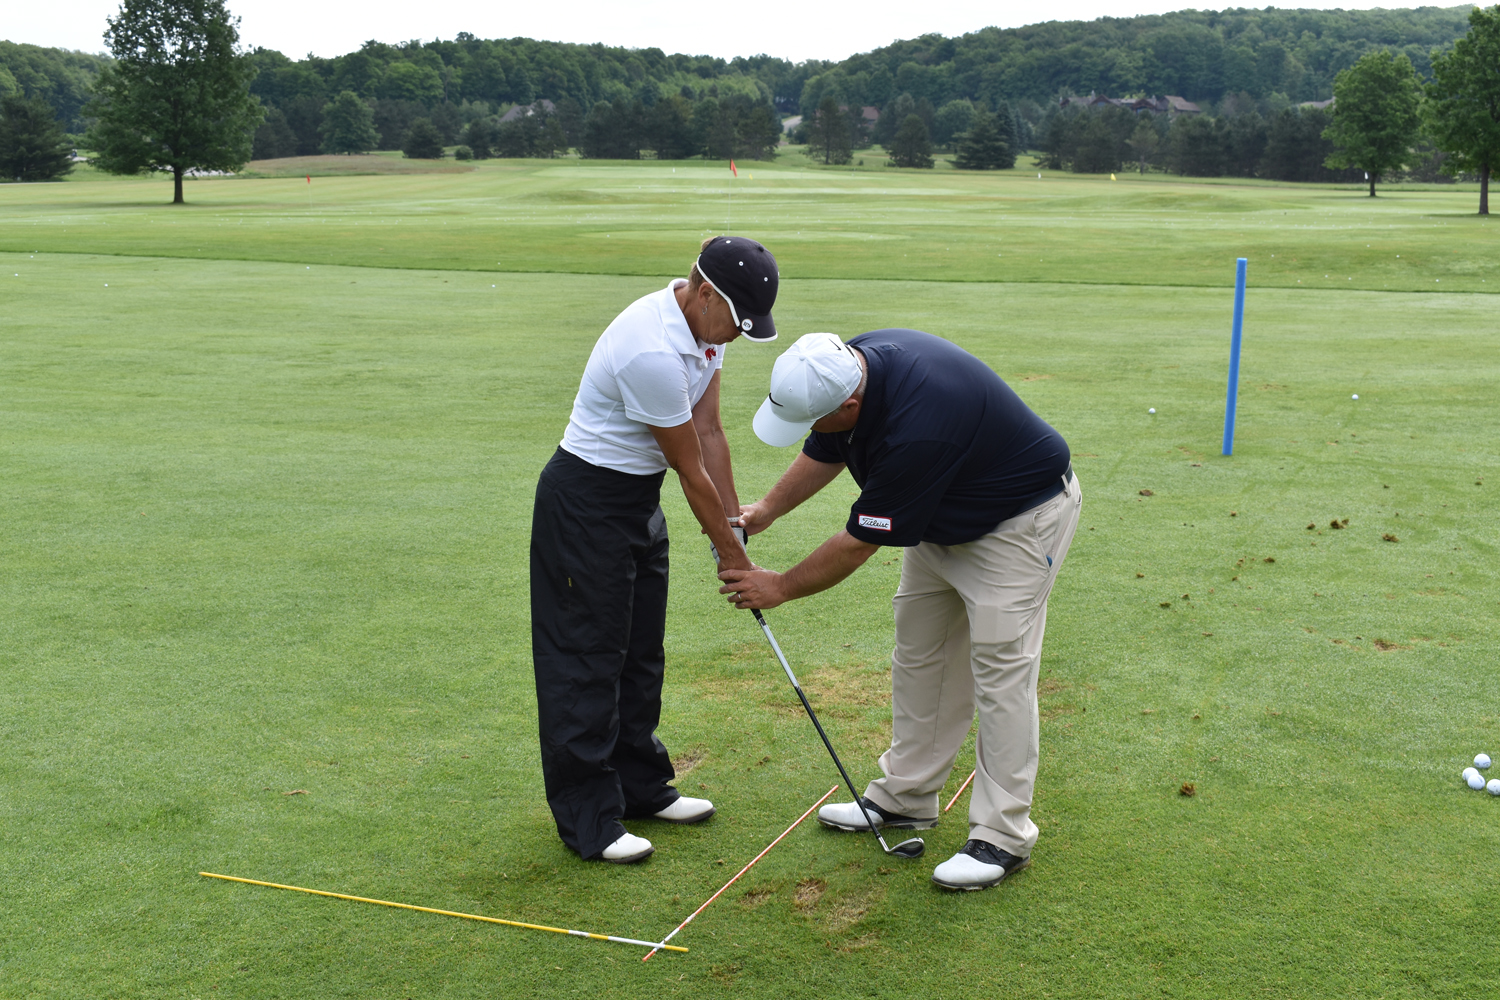 Adult Private Lessons Mike Fay Golf Academy